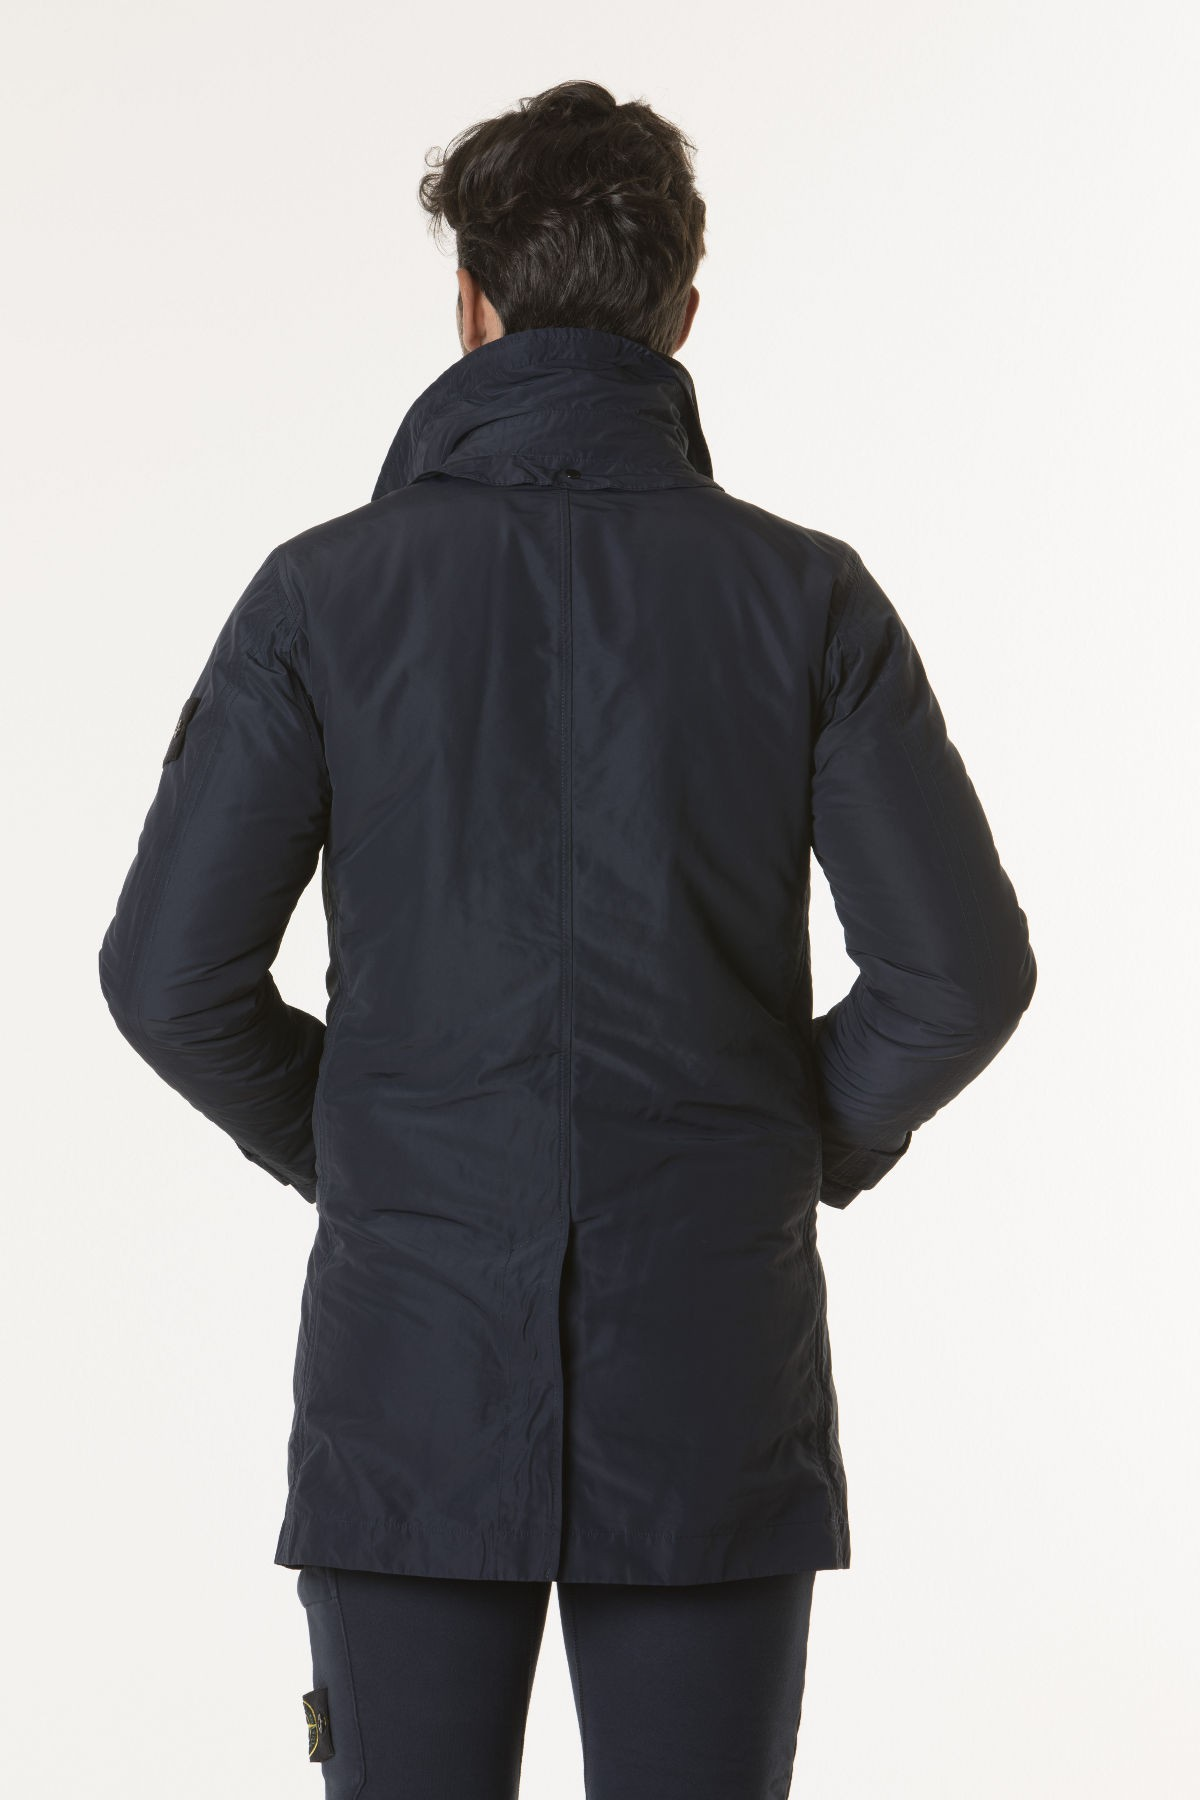 Giubbotto MICRO REPS WITH PRIMALOFT® INSULATION TECHNOLOGY per uomo ... 179b15f9160